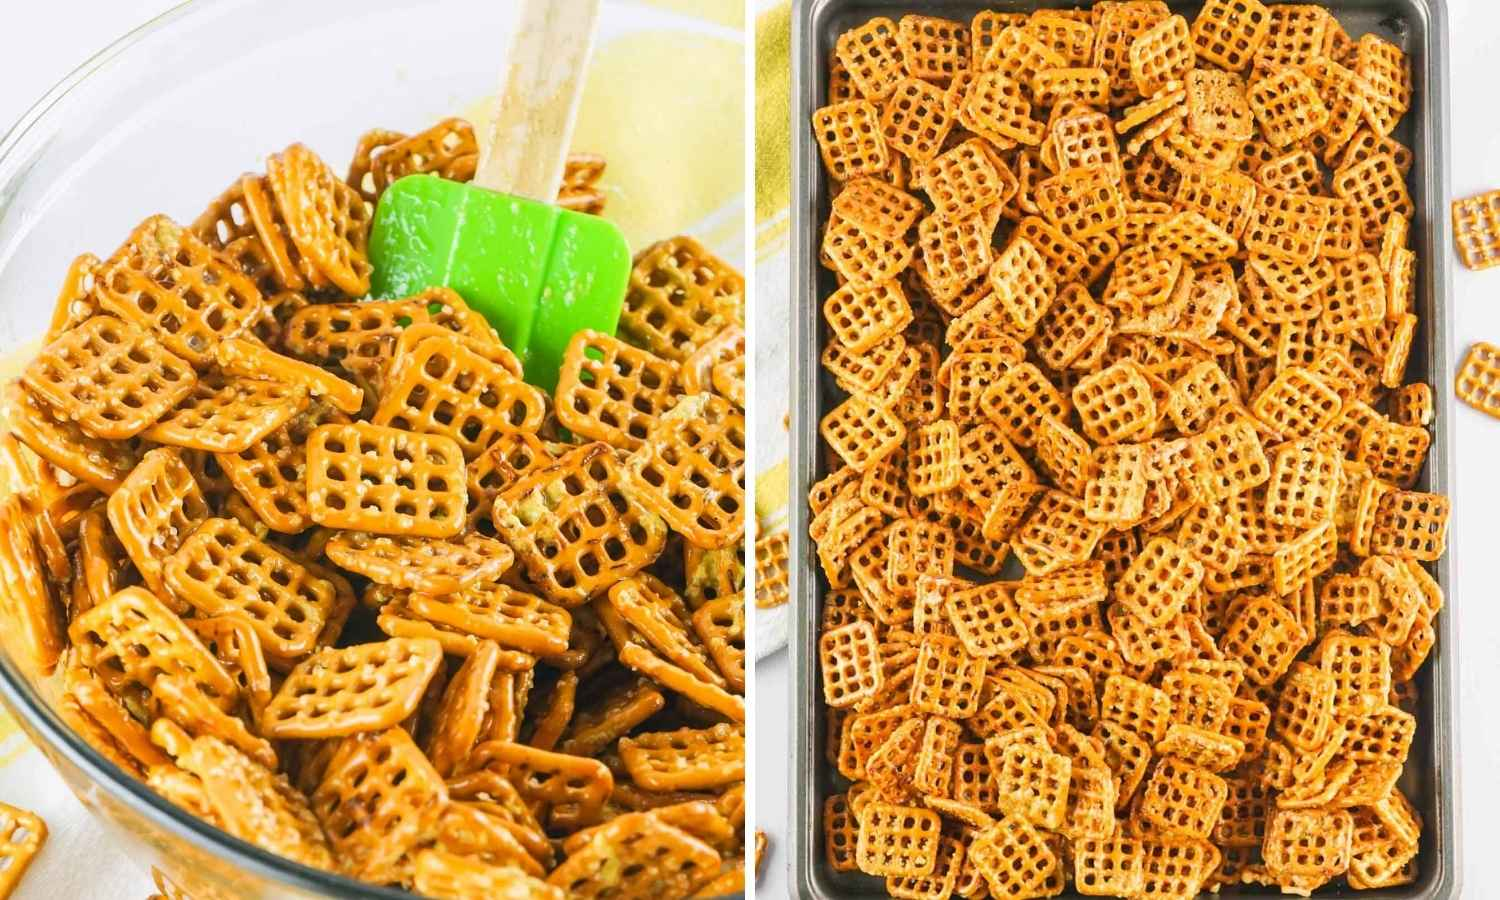 How to Make Honey Mustard Pretzels shown in a collage of two images